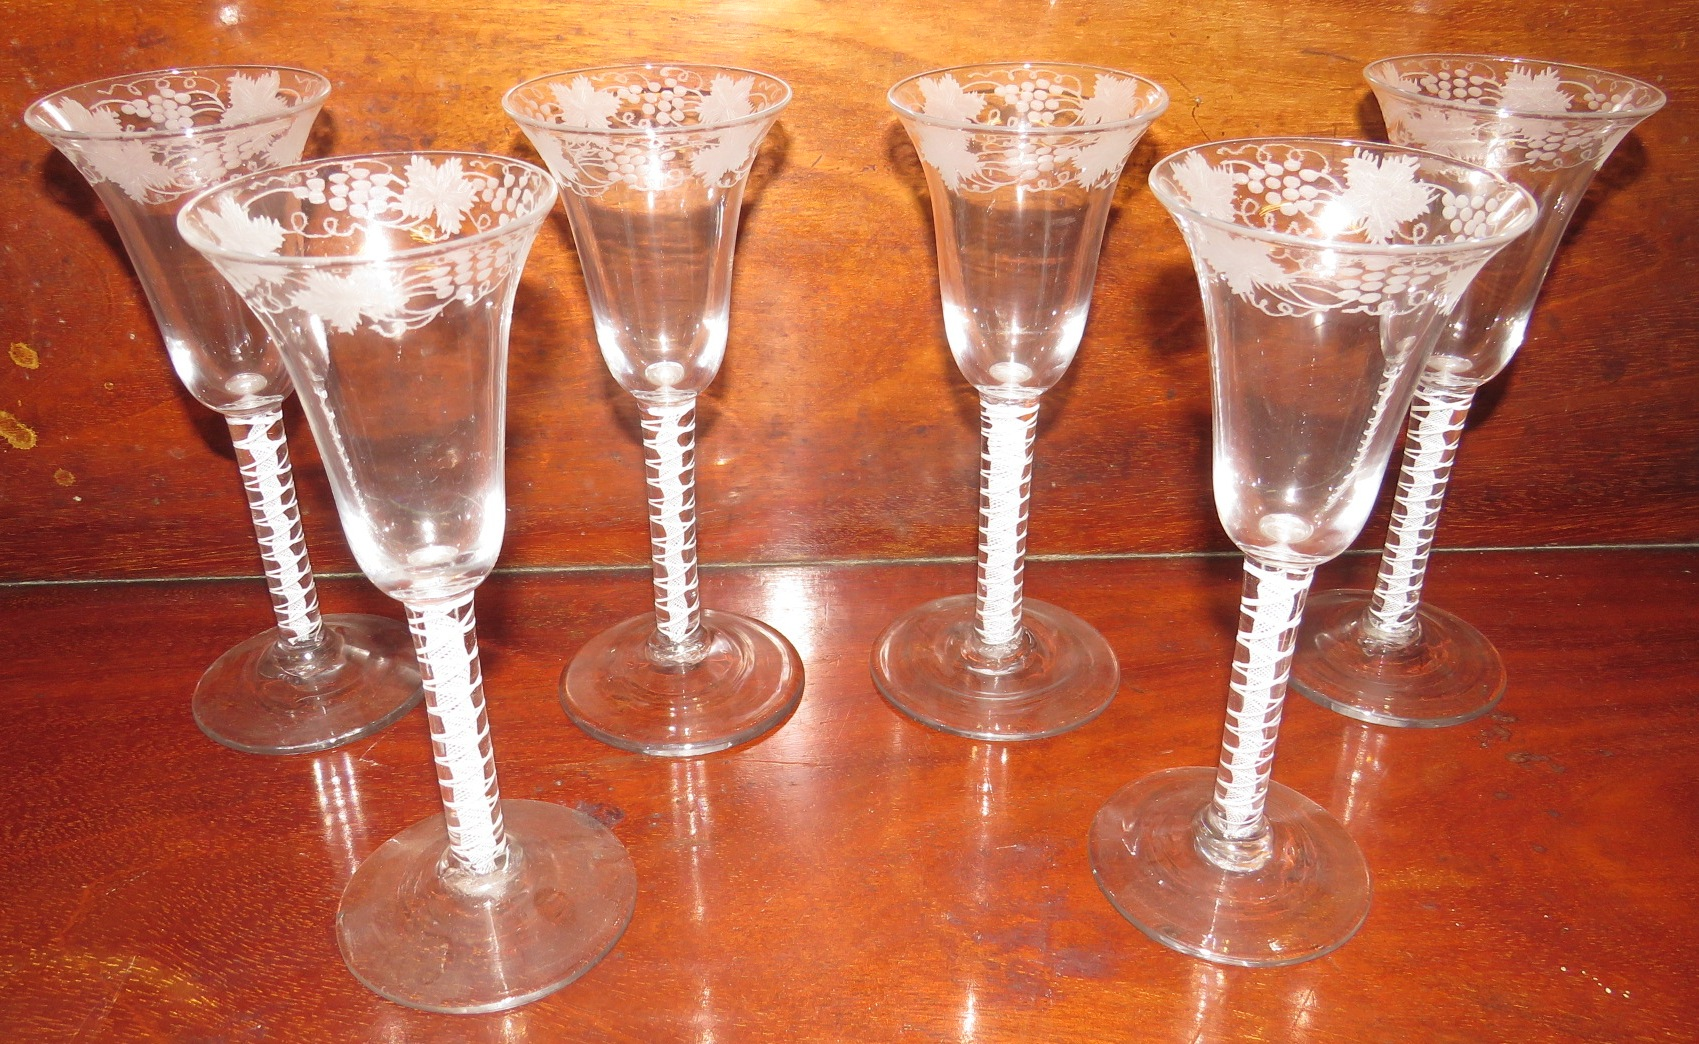 Lot 116 - Six 19th century wine glasses with multi-strand air twist stems, bell-shape bowls etched with border